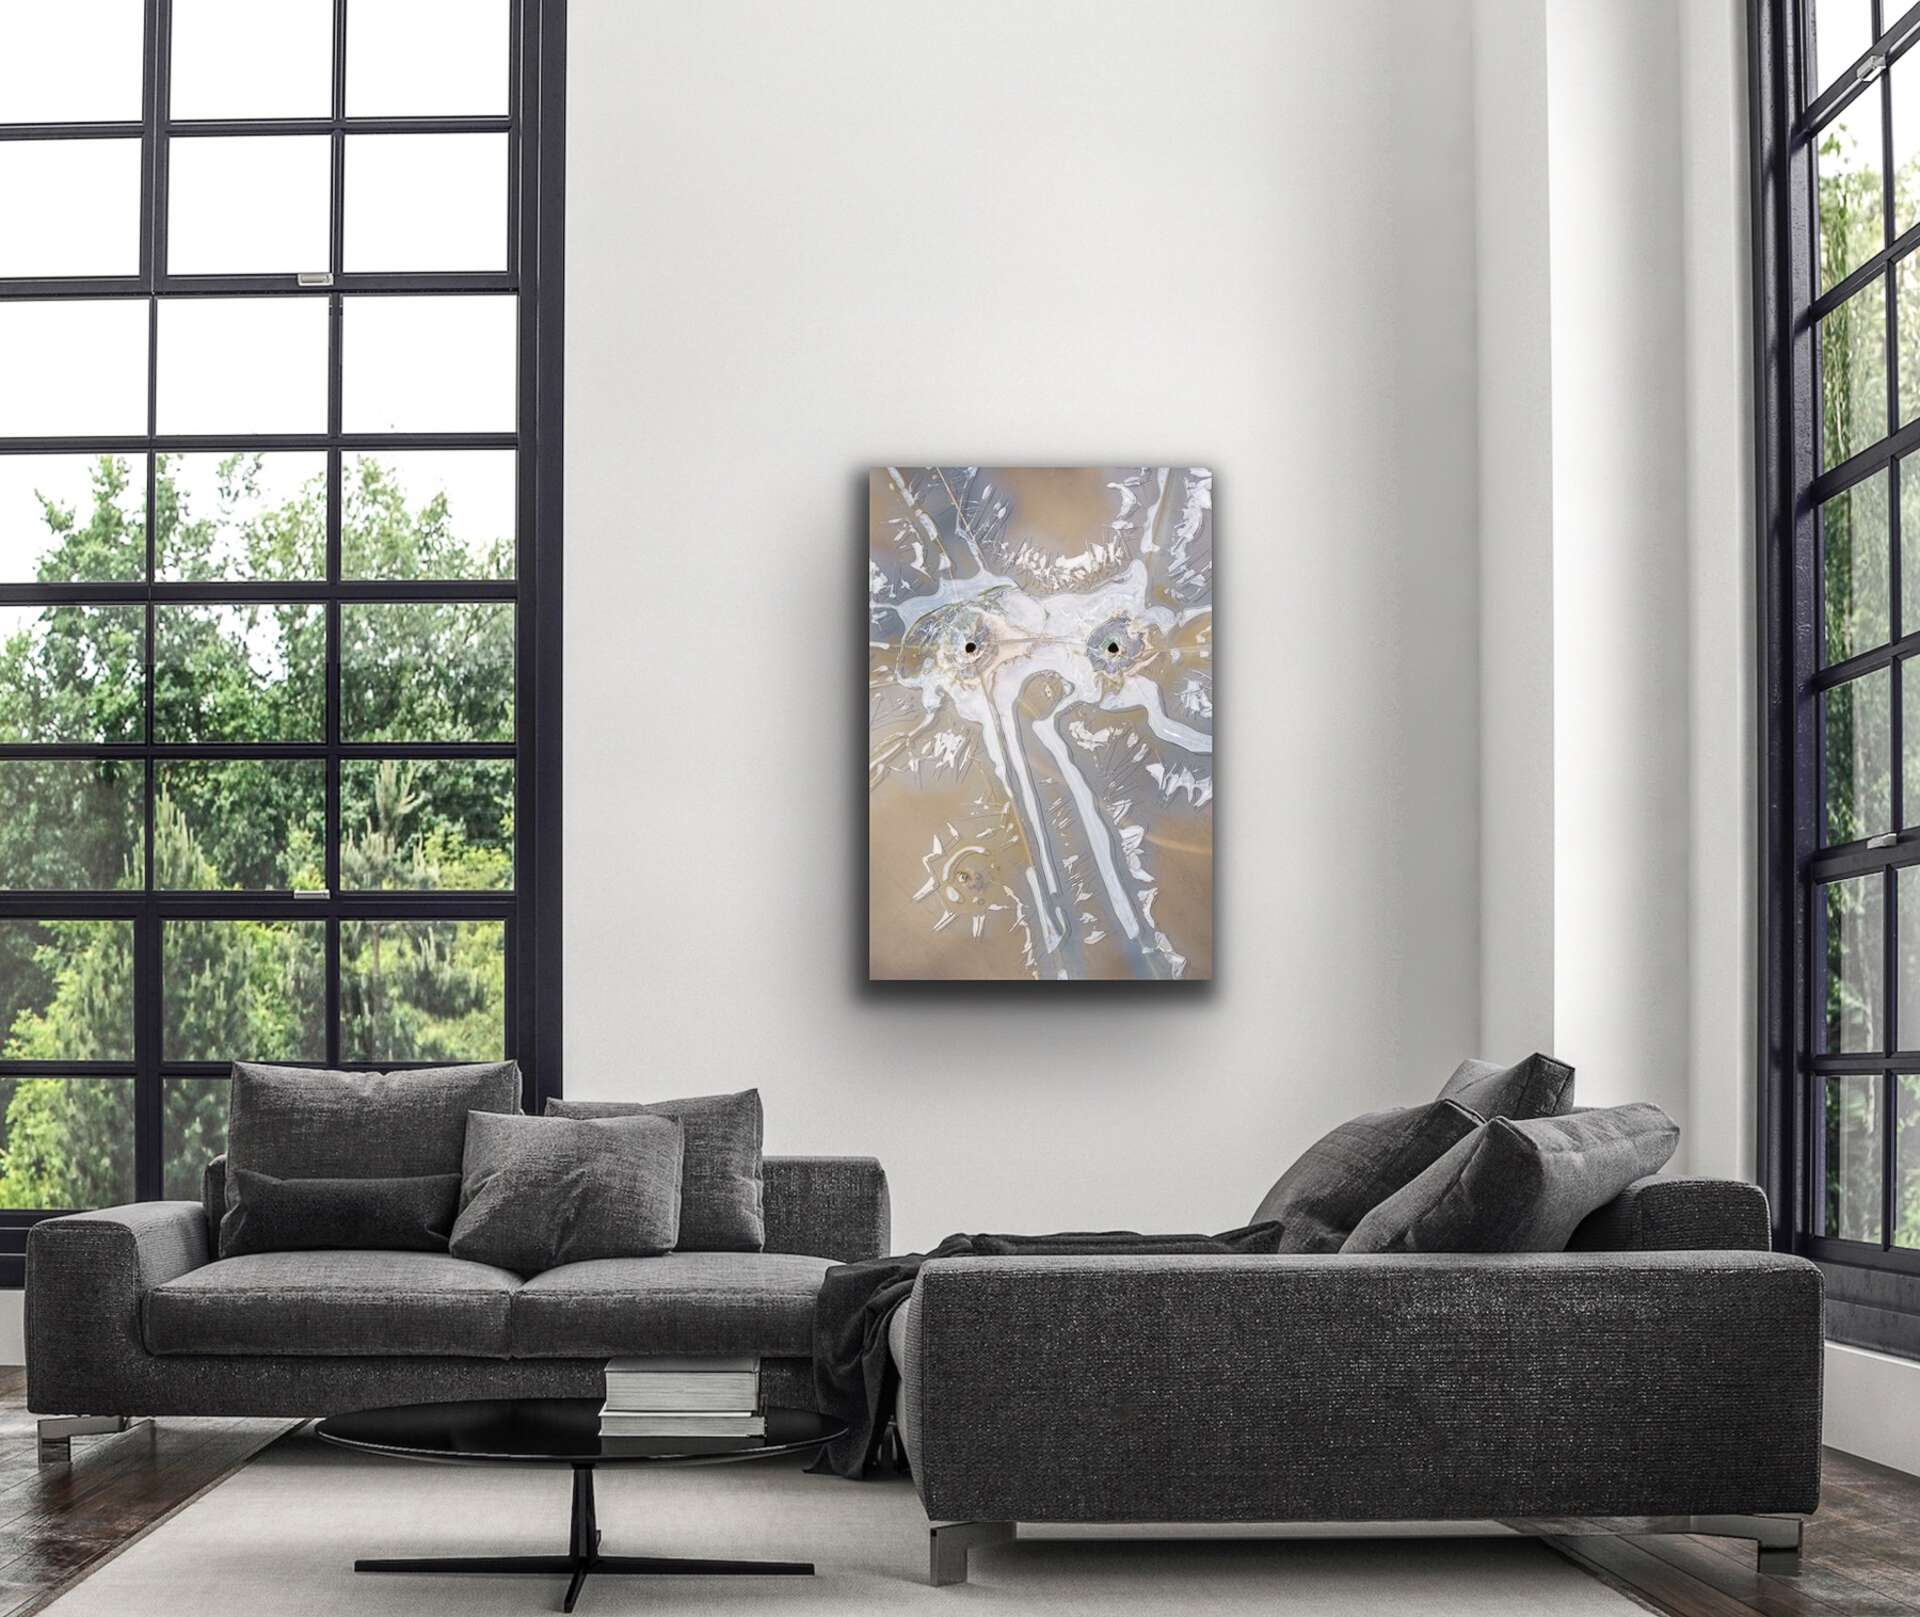 elephant in the room abstract idiom art print on a wall with a gray sofa in living room